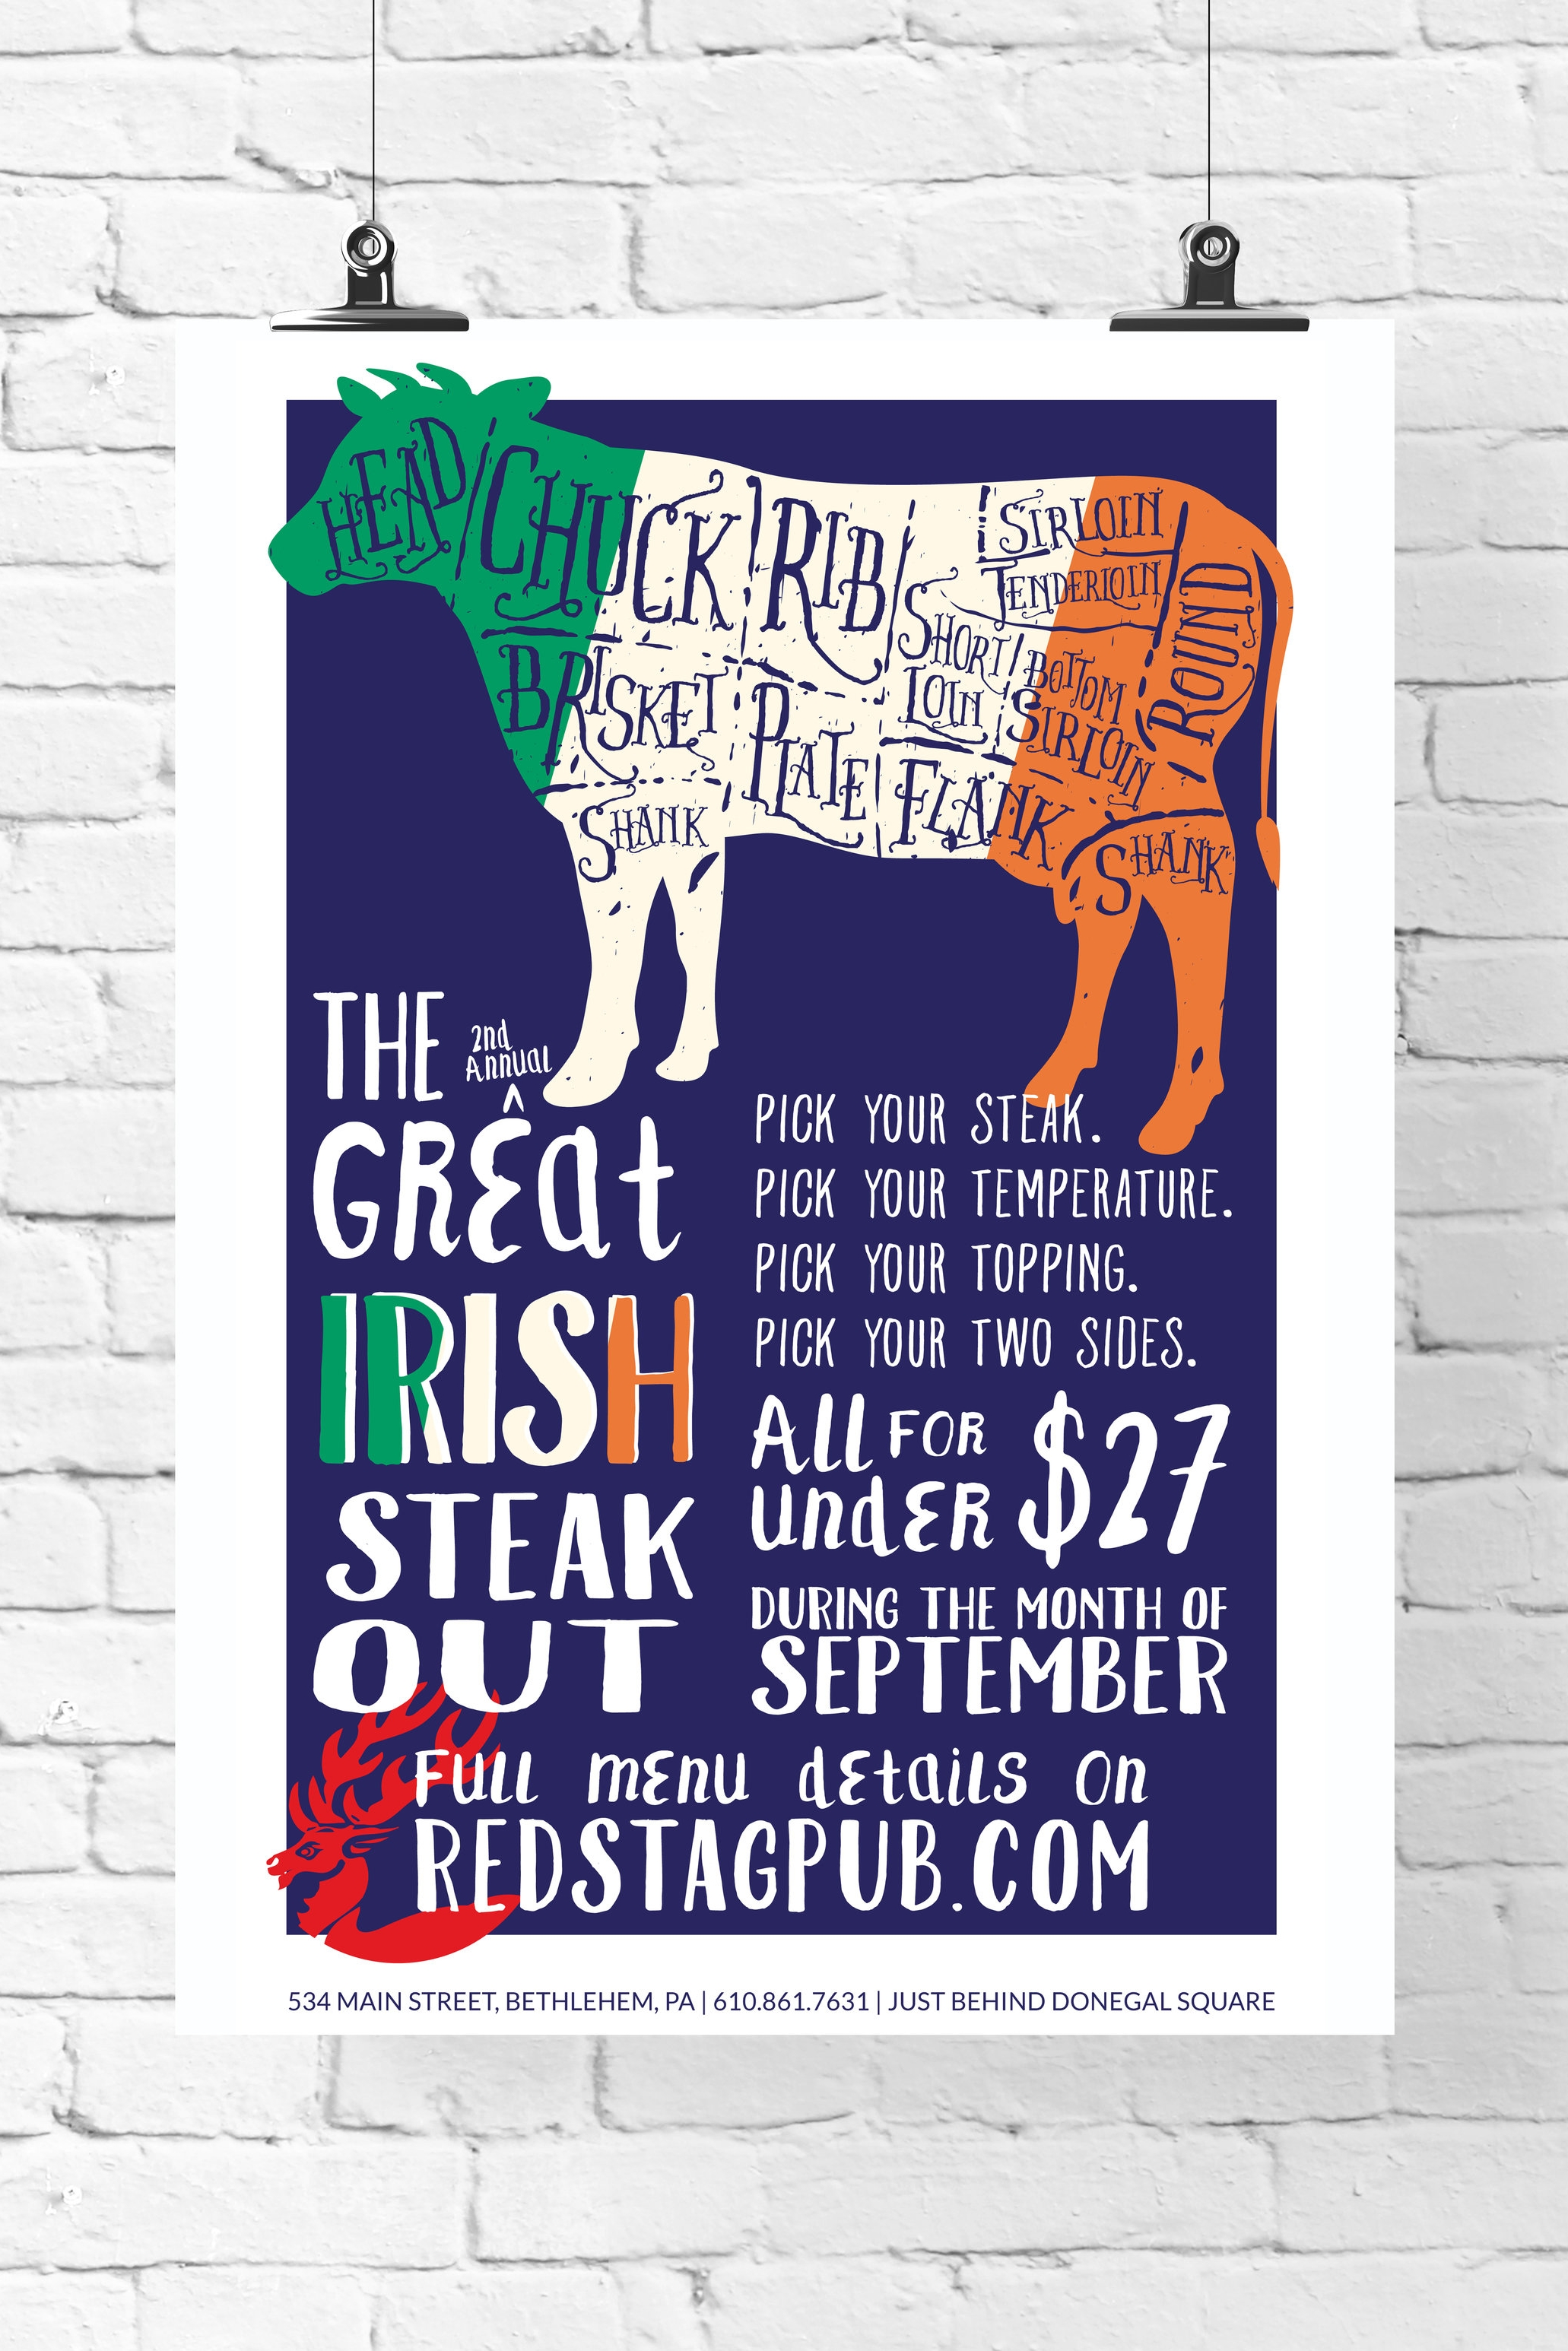 GREAT IRISH STEAK OUT • 11x17 PROMOTIONAL POSTER  CLIENT: McCARTHY'S RED STAG PUB AND WHISKEY BAR BRIEF: Create materials to promote the a la carte steak menu option during the month of September. WORK: Adobe Illustrator + InDesign